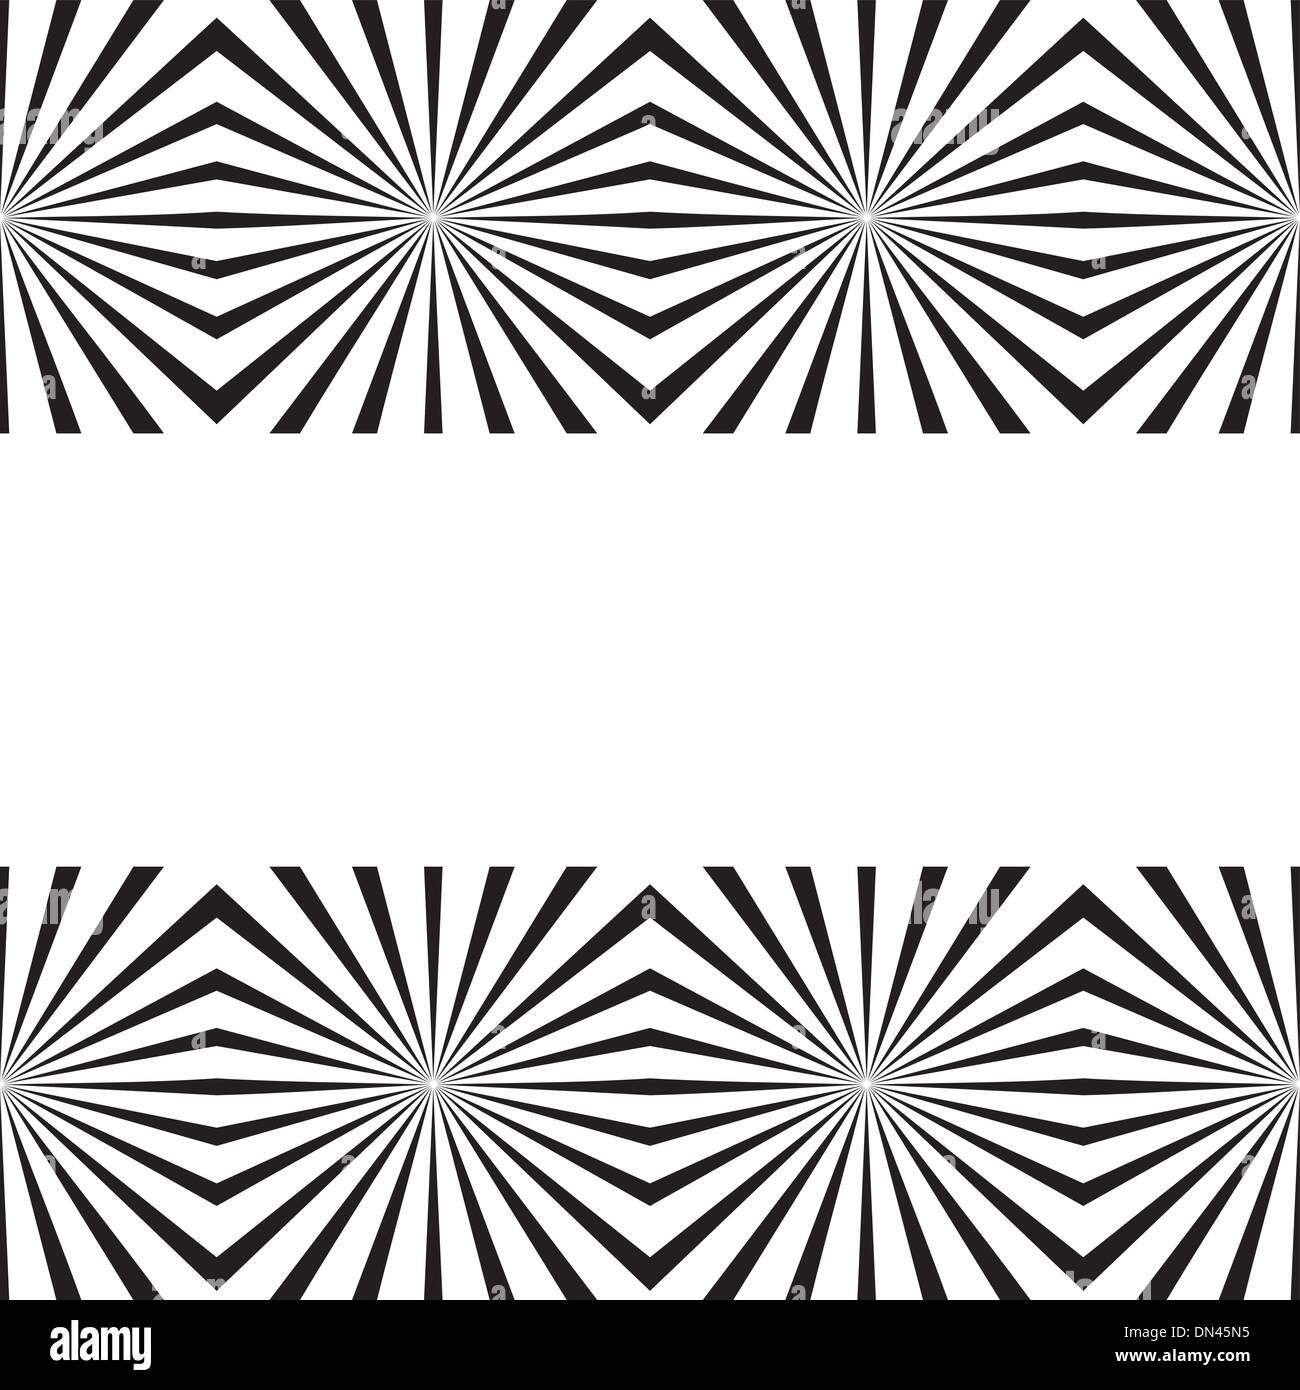 Vector geometric illusions tile - Stock Image